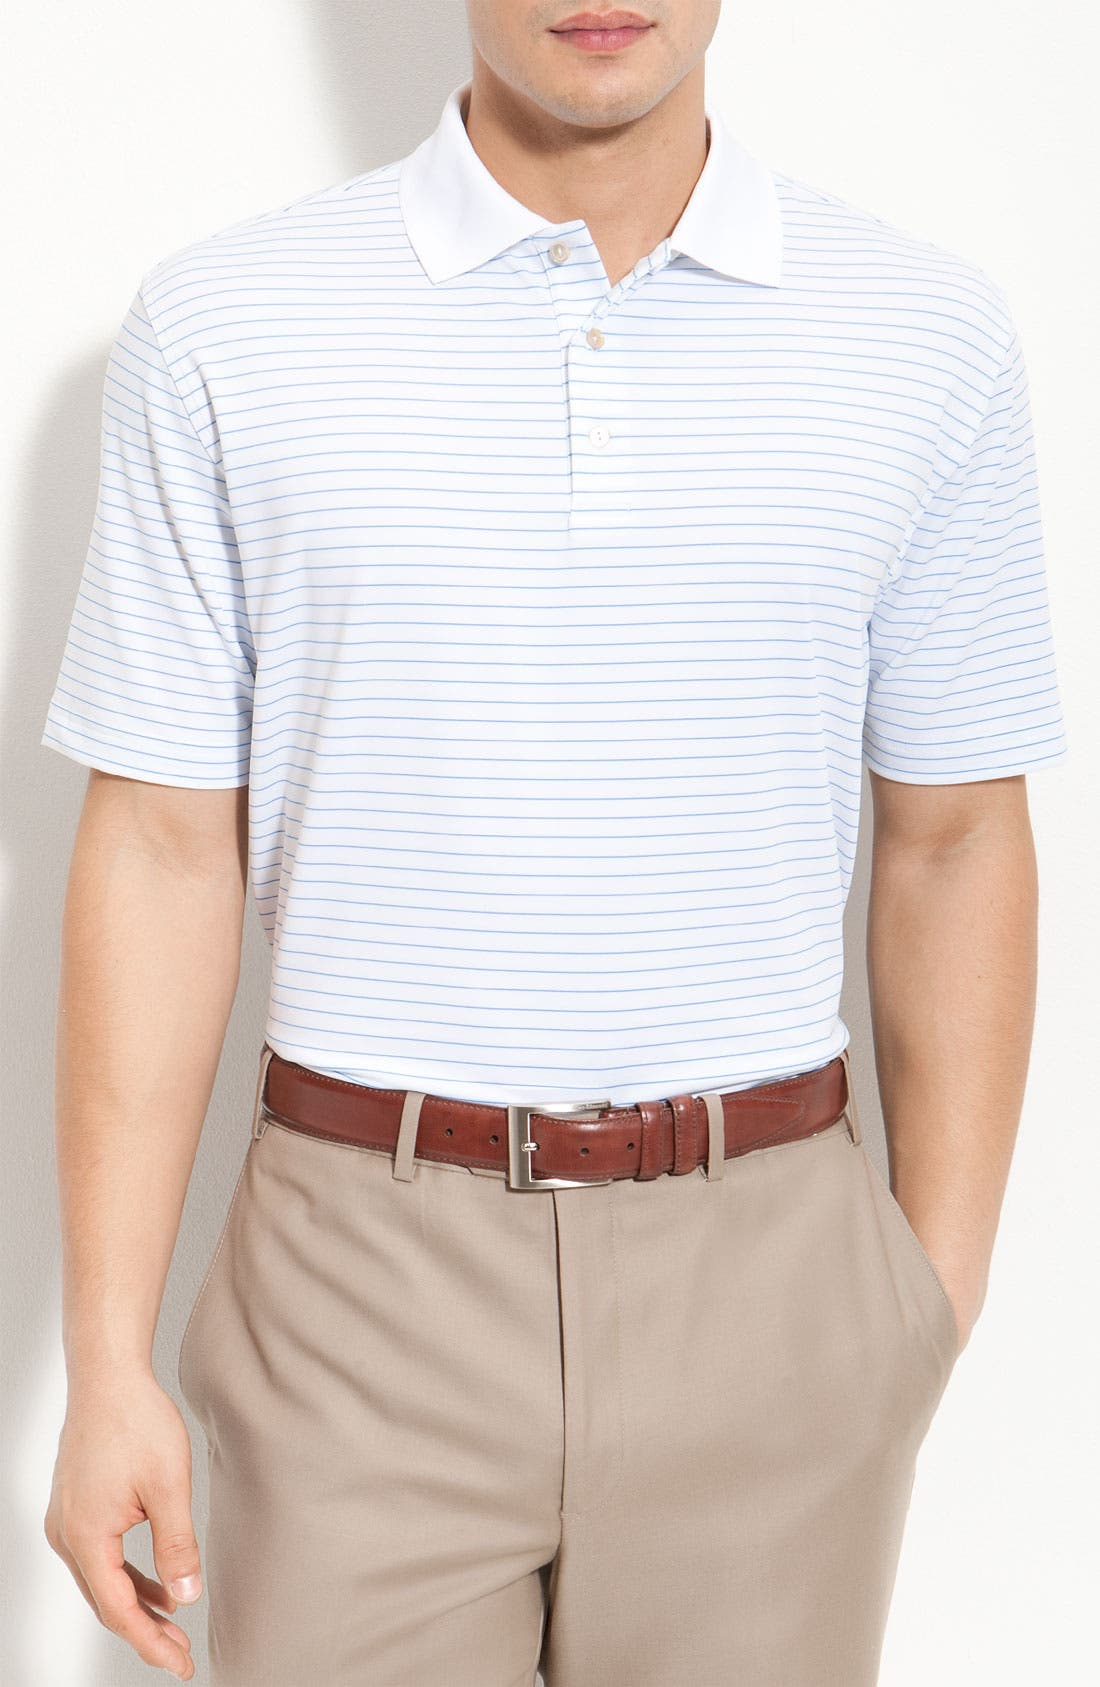 Main Image - Peter Millar 'Single Stripe Lisle' Polo